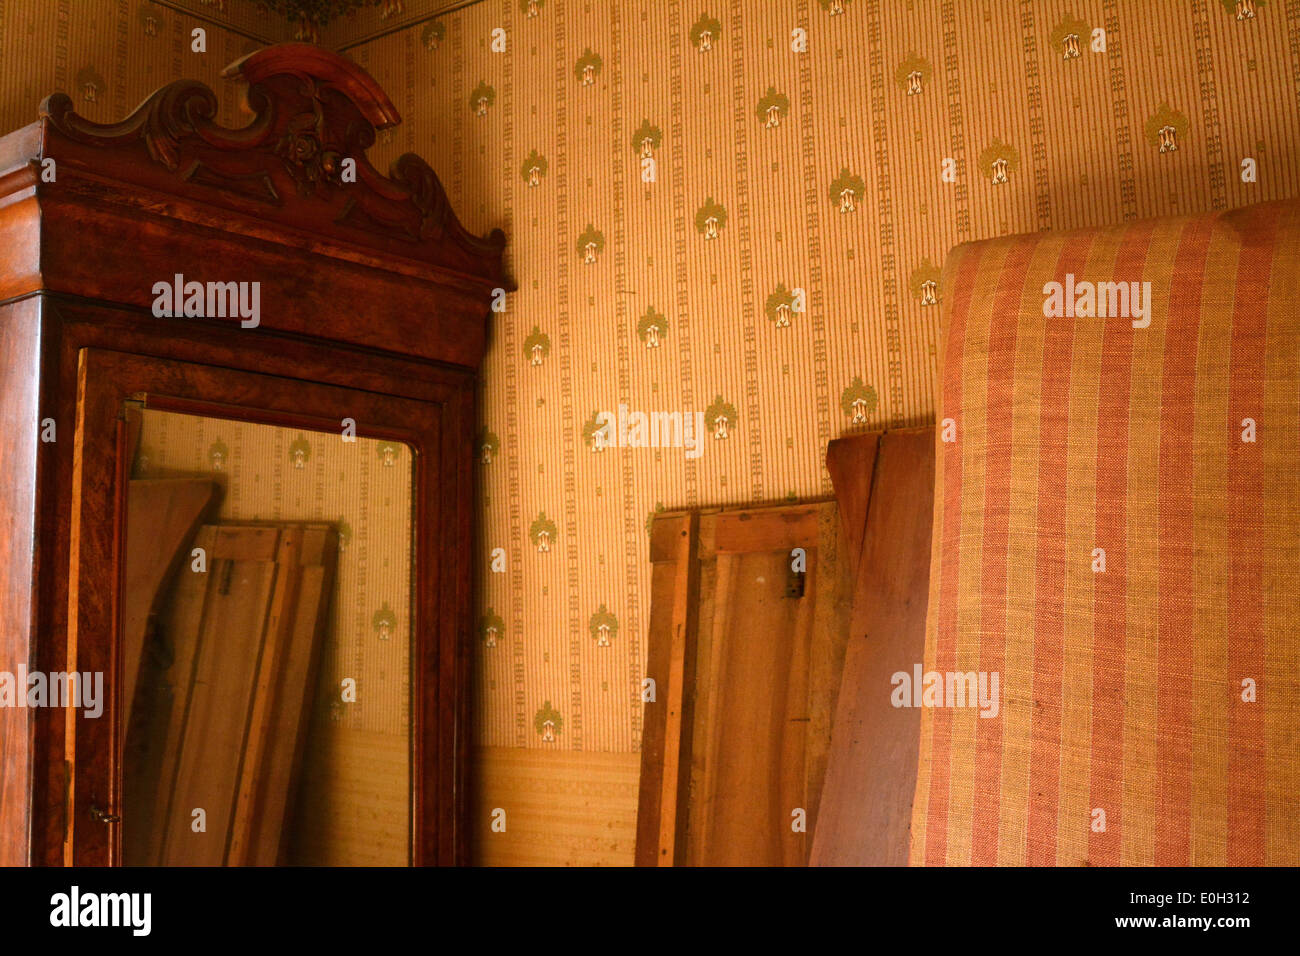 Old furniture, wardrobe and mattresses in an attic - Stock Image